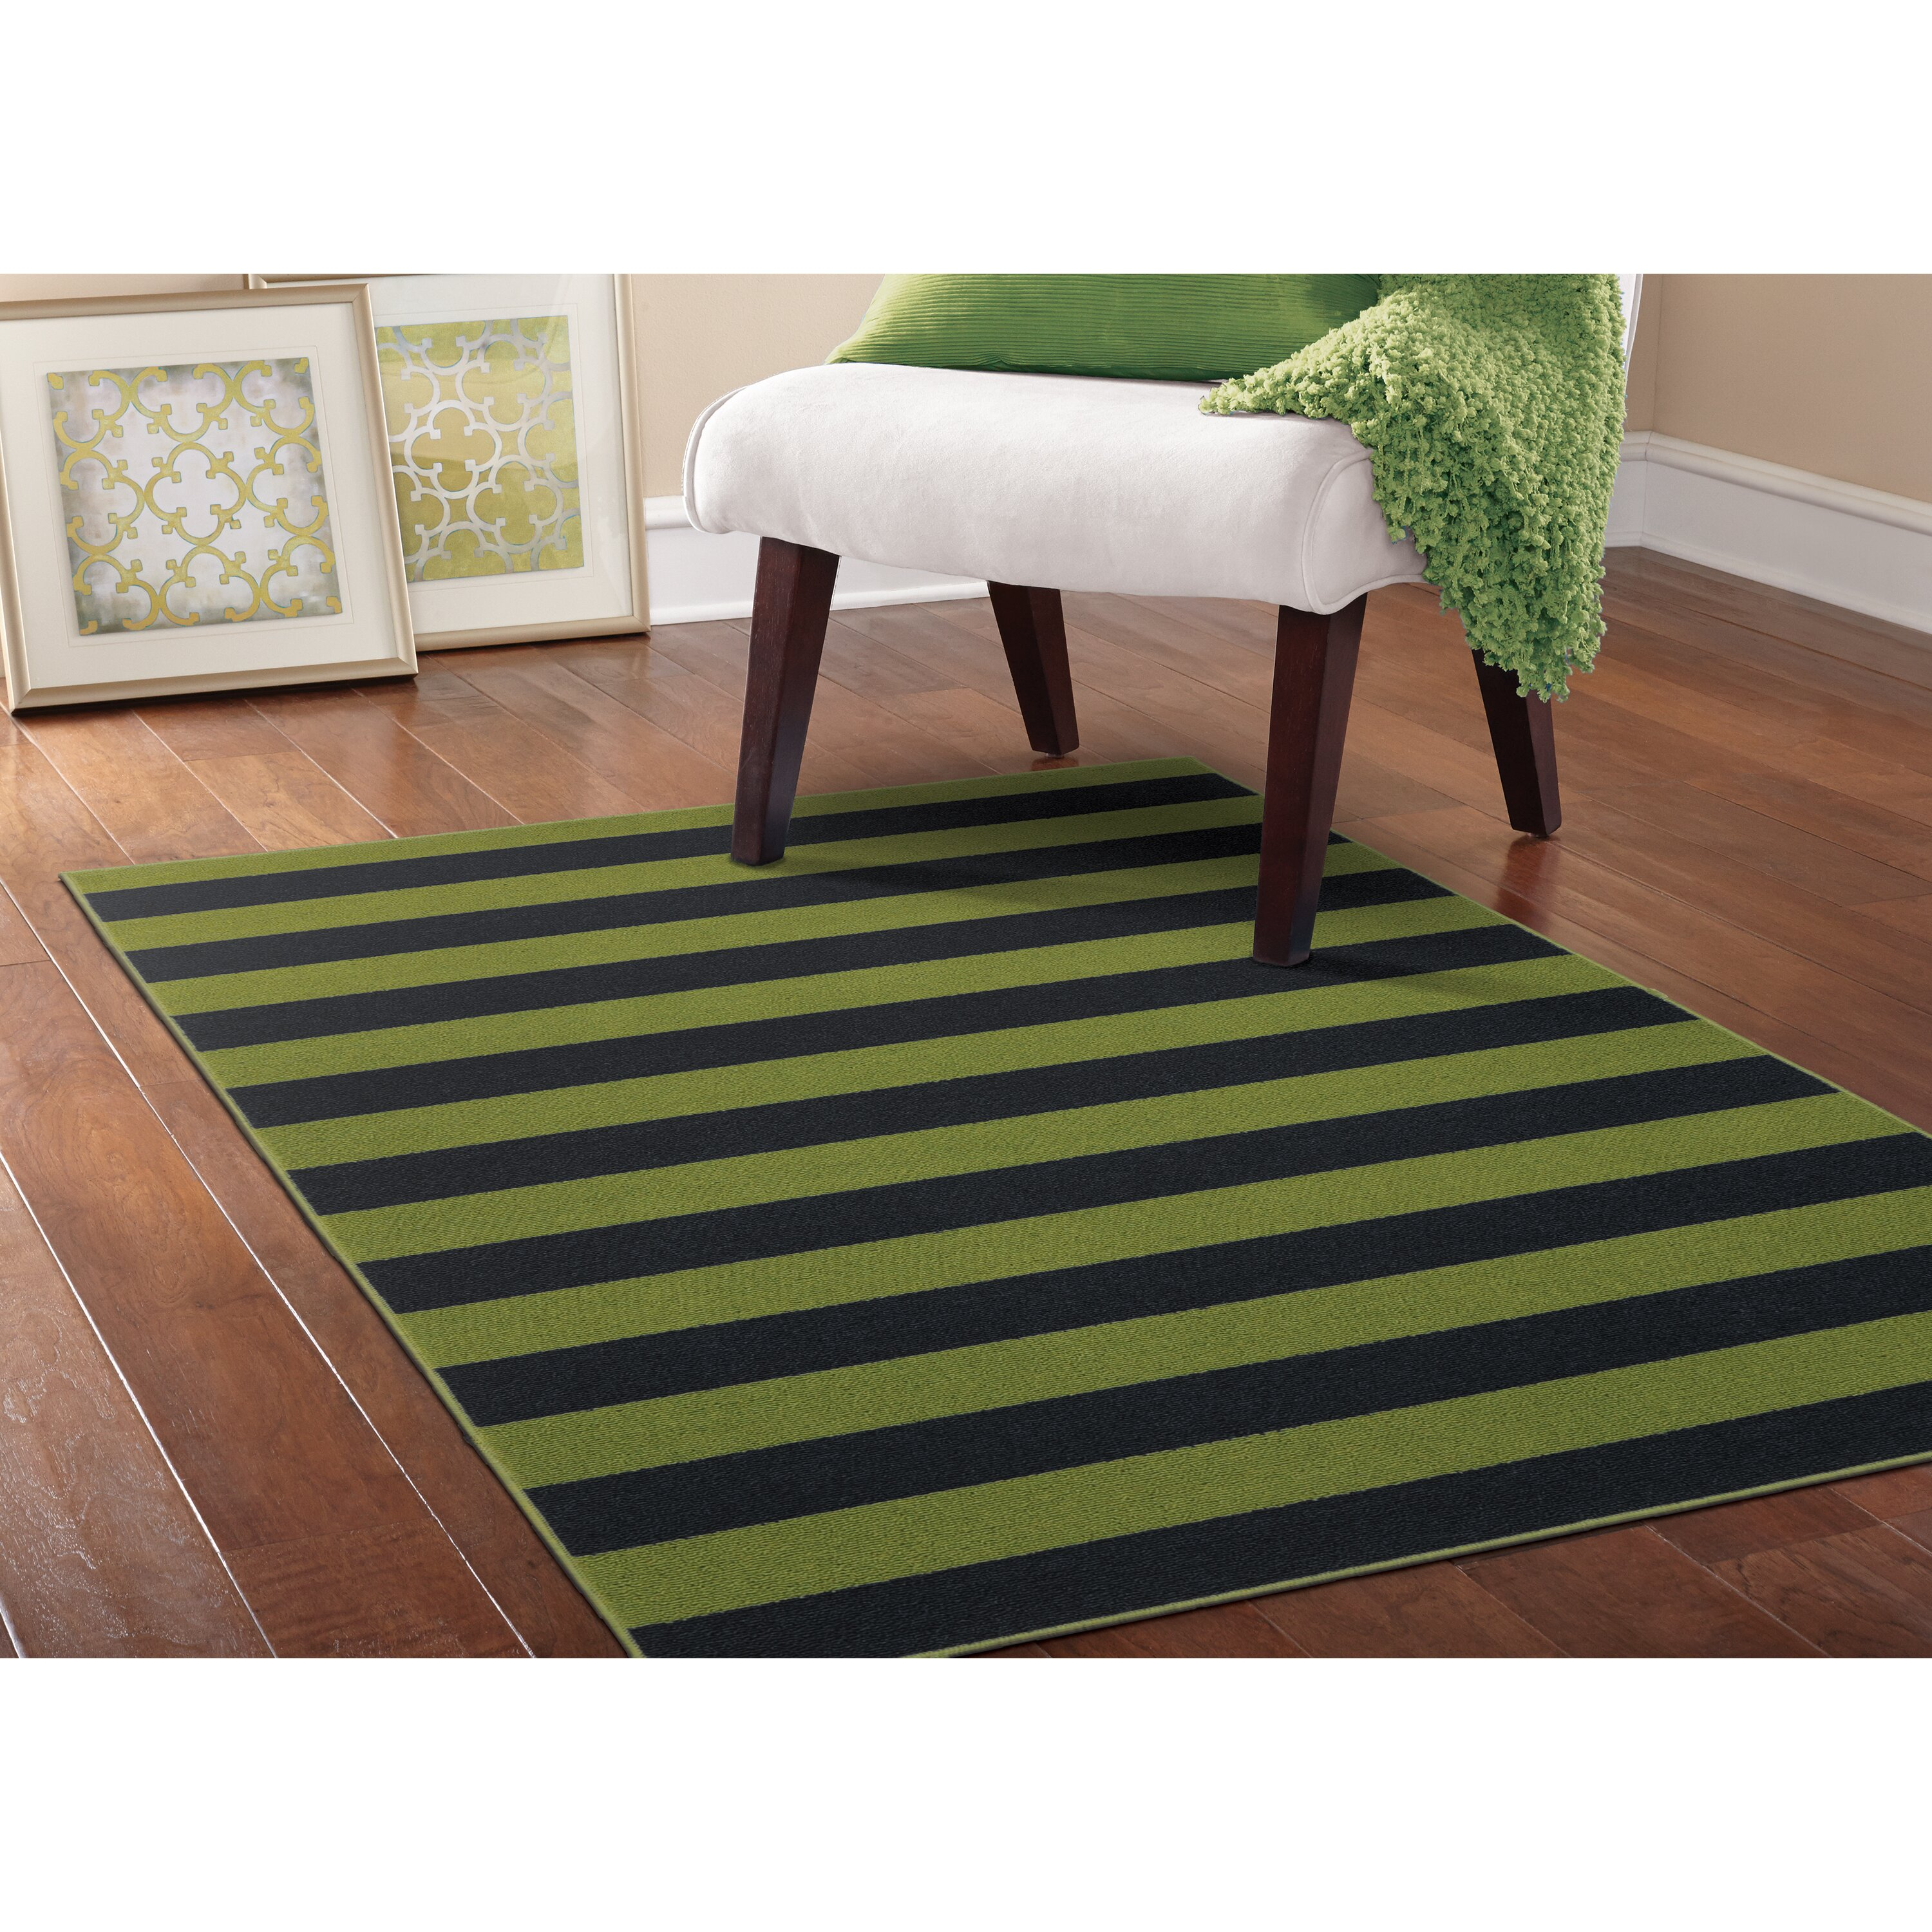 Garland Rug Rugby Sage Navy Area Rug: home furniture and rugs garland